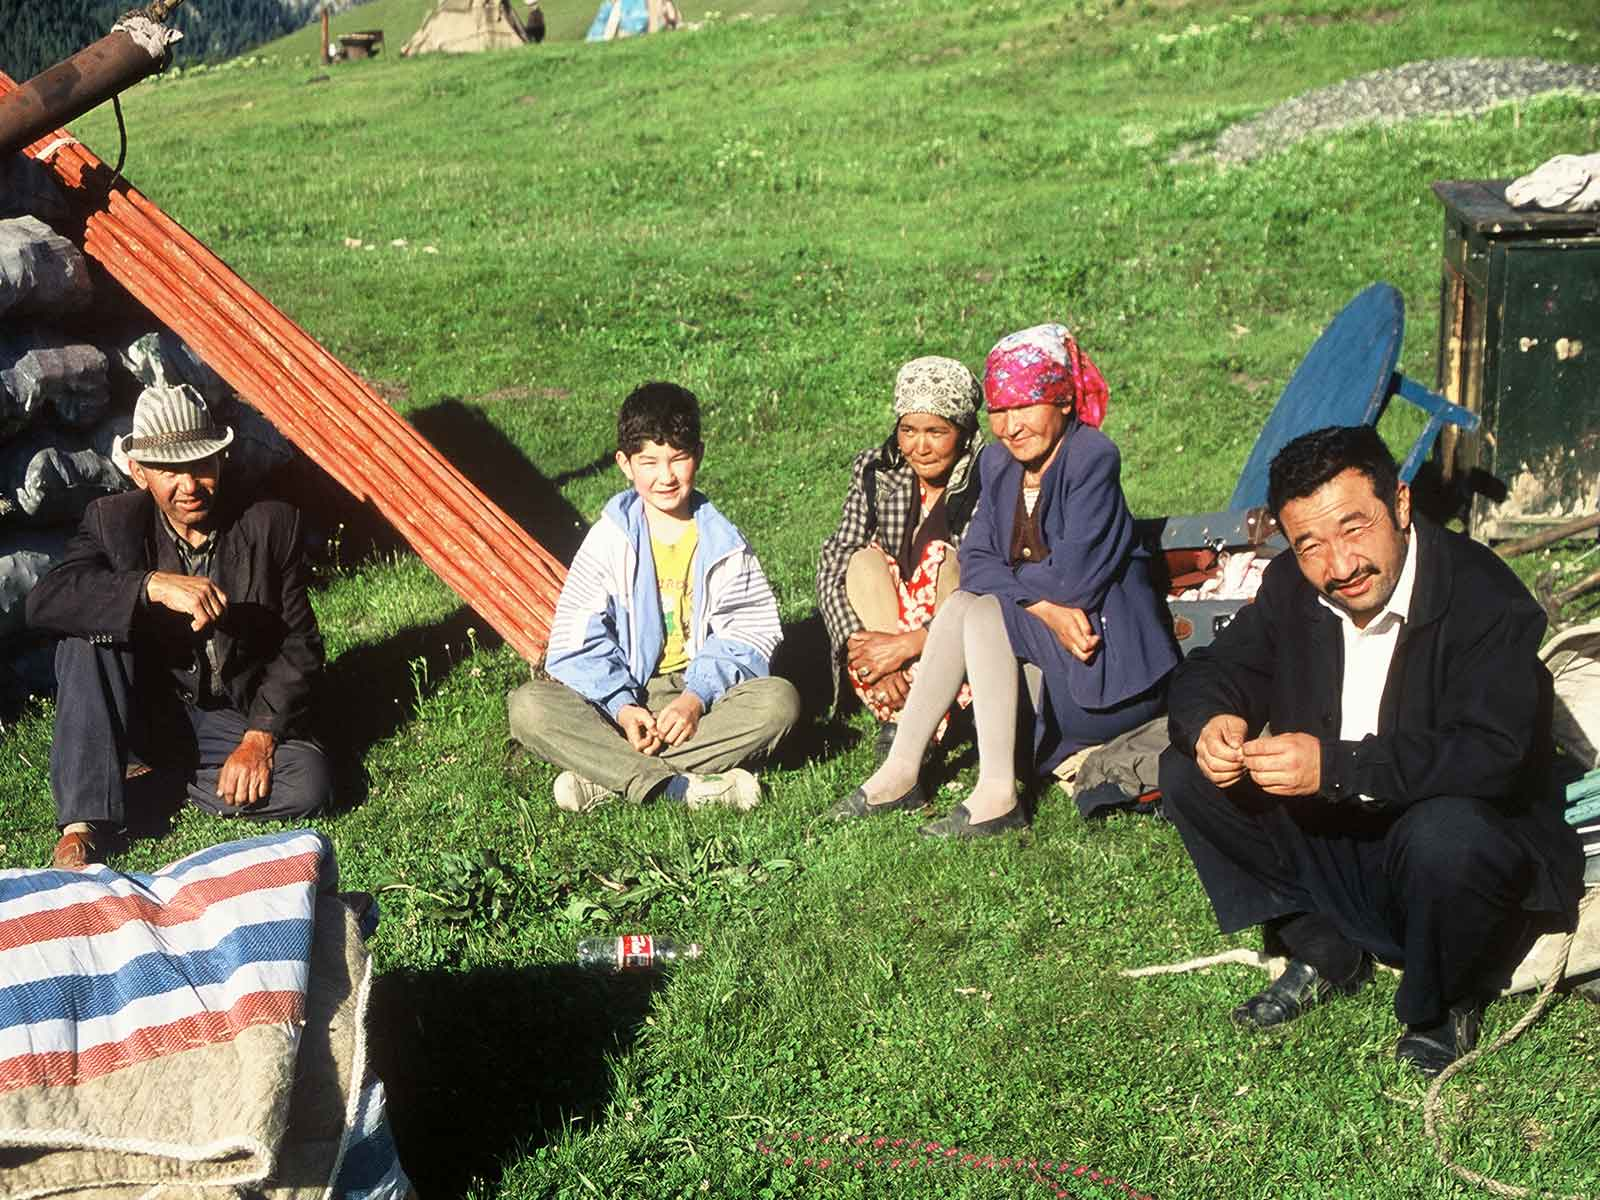 Kazakh family - Yurt - lower pastures Tianshan - Heavenly Mountains - Xinjiang China - Silk Road Research - Dr Steven Andrew Martin - Photo Journal